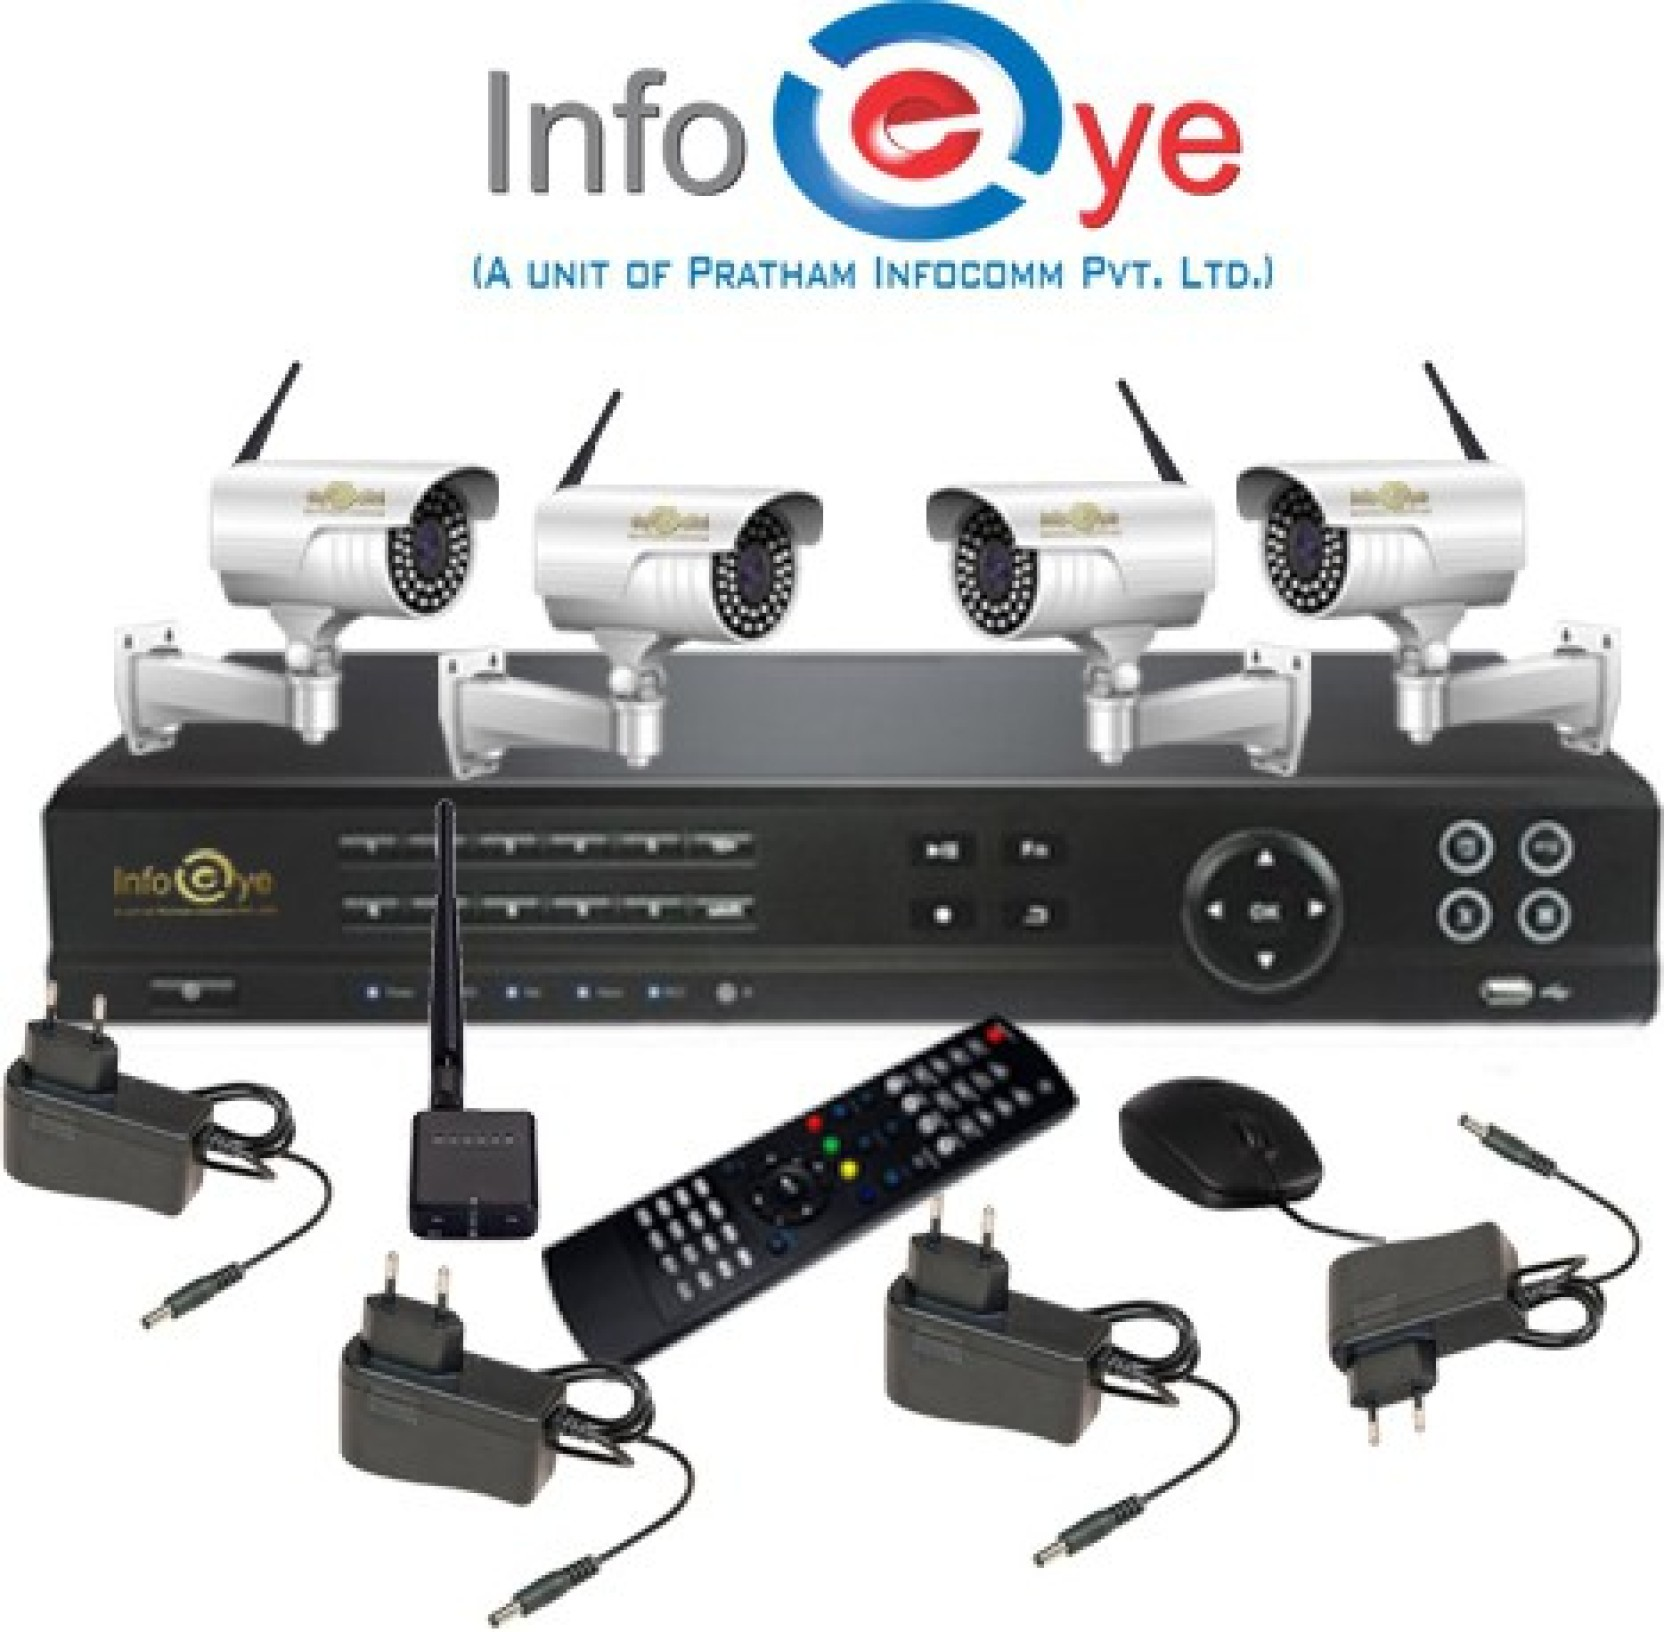 Infoeye Wireless Nvr Kit Home Security Camera Price In India Buy D3d Alarm System New Delhi Share